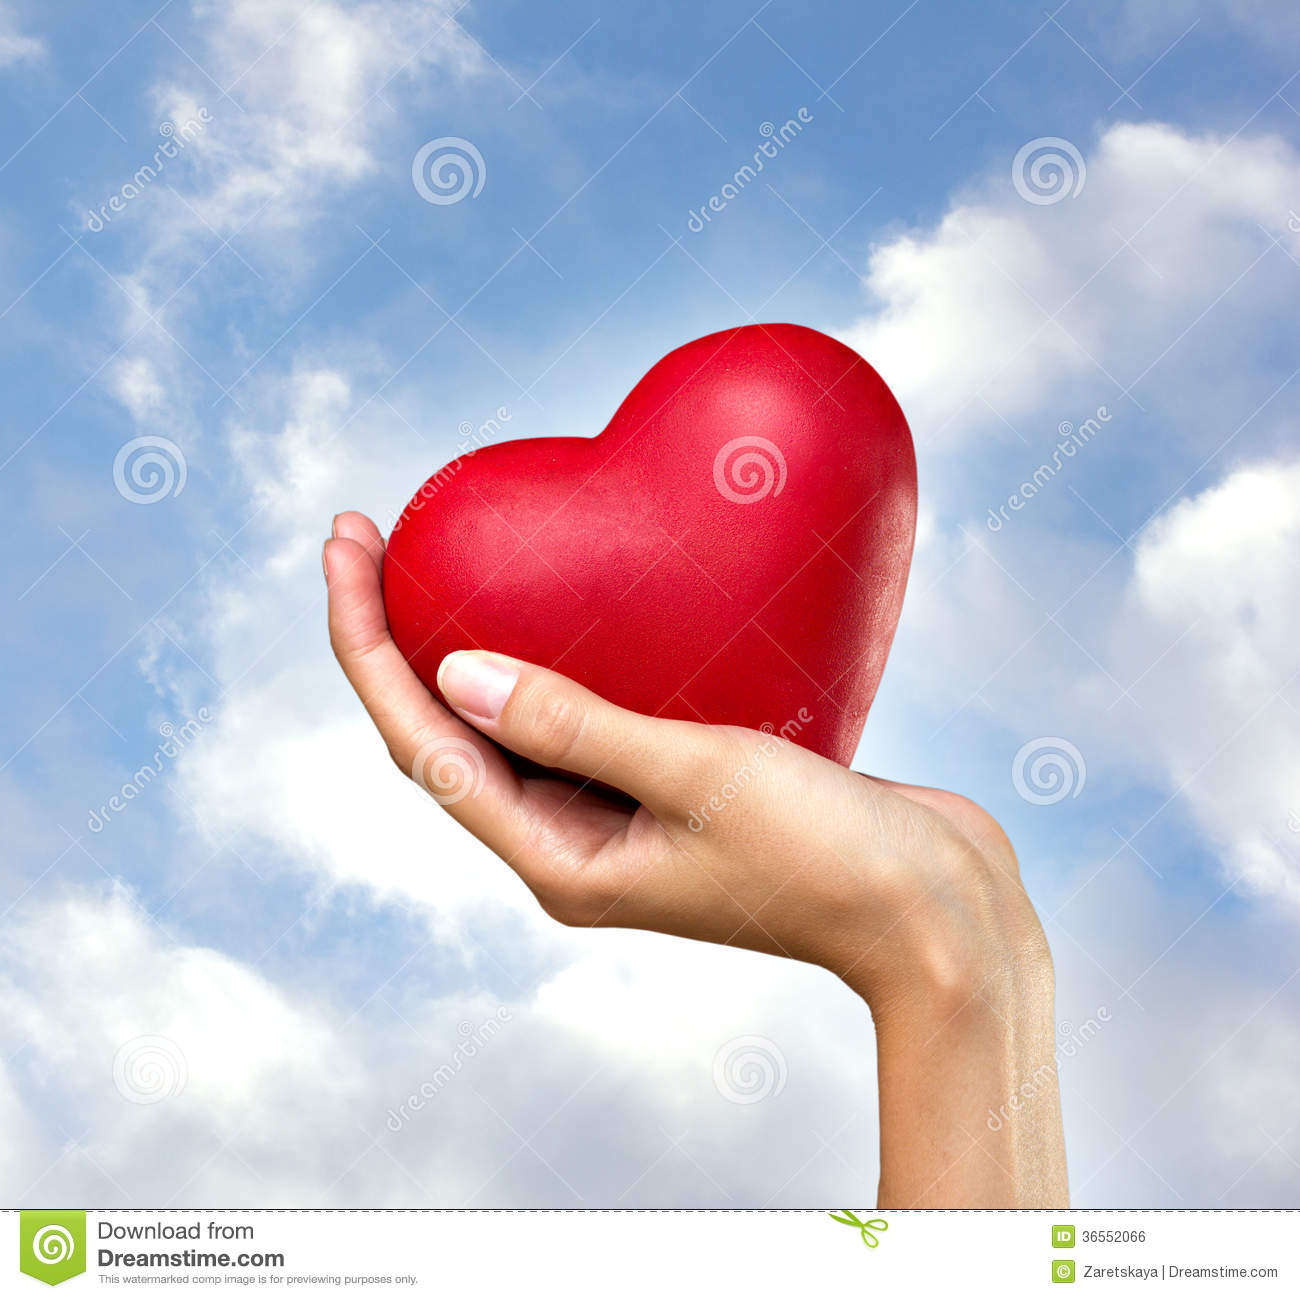 heart-hand-red-womans-blue-sky-clouds-ba